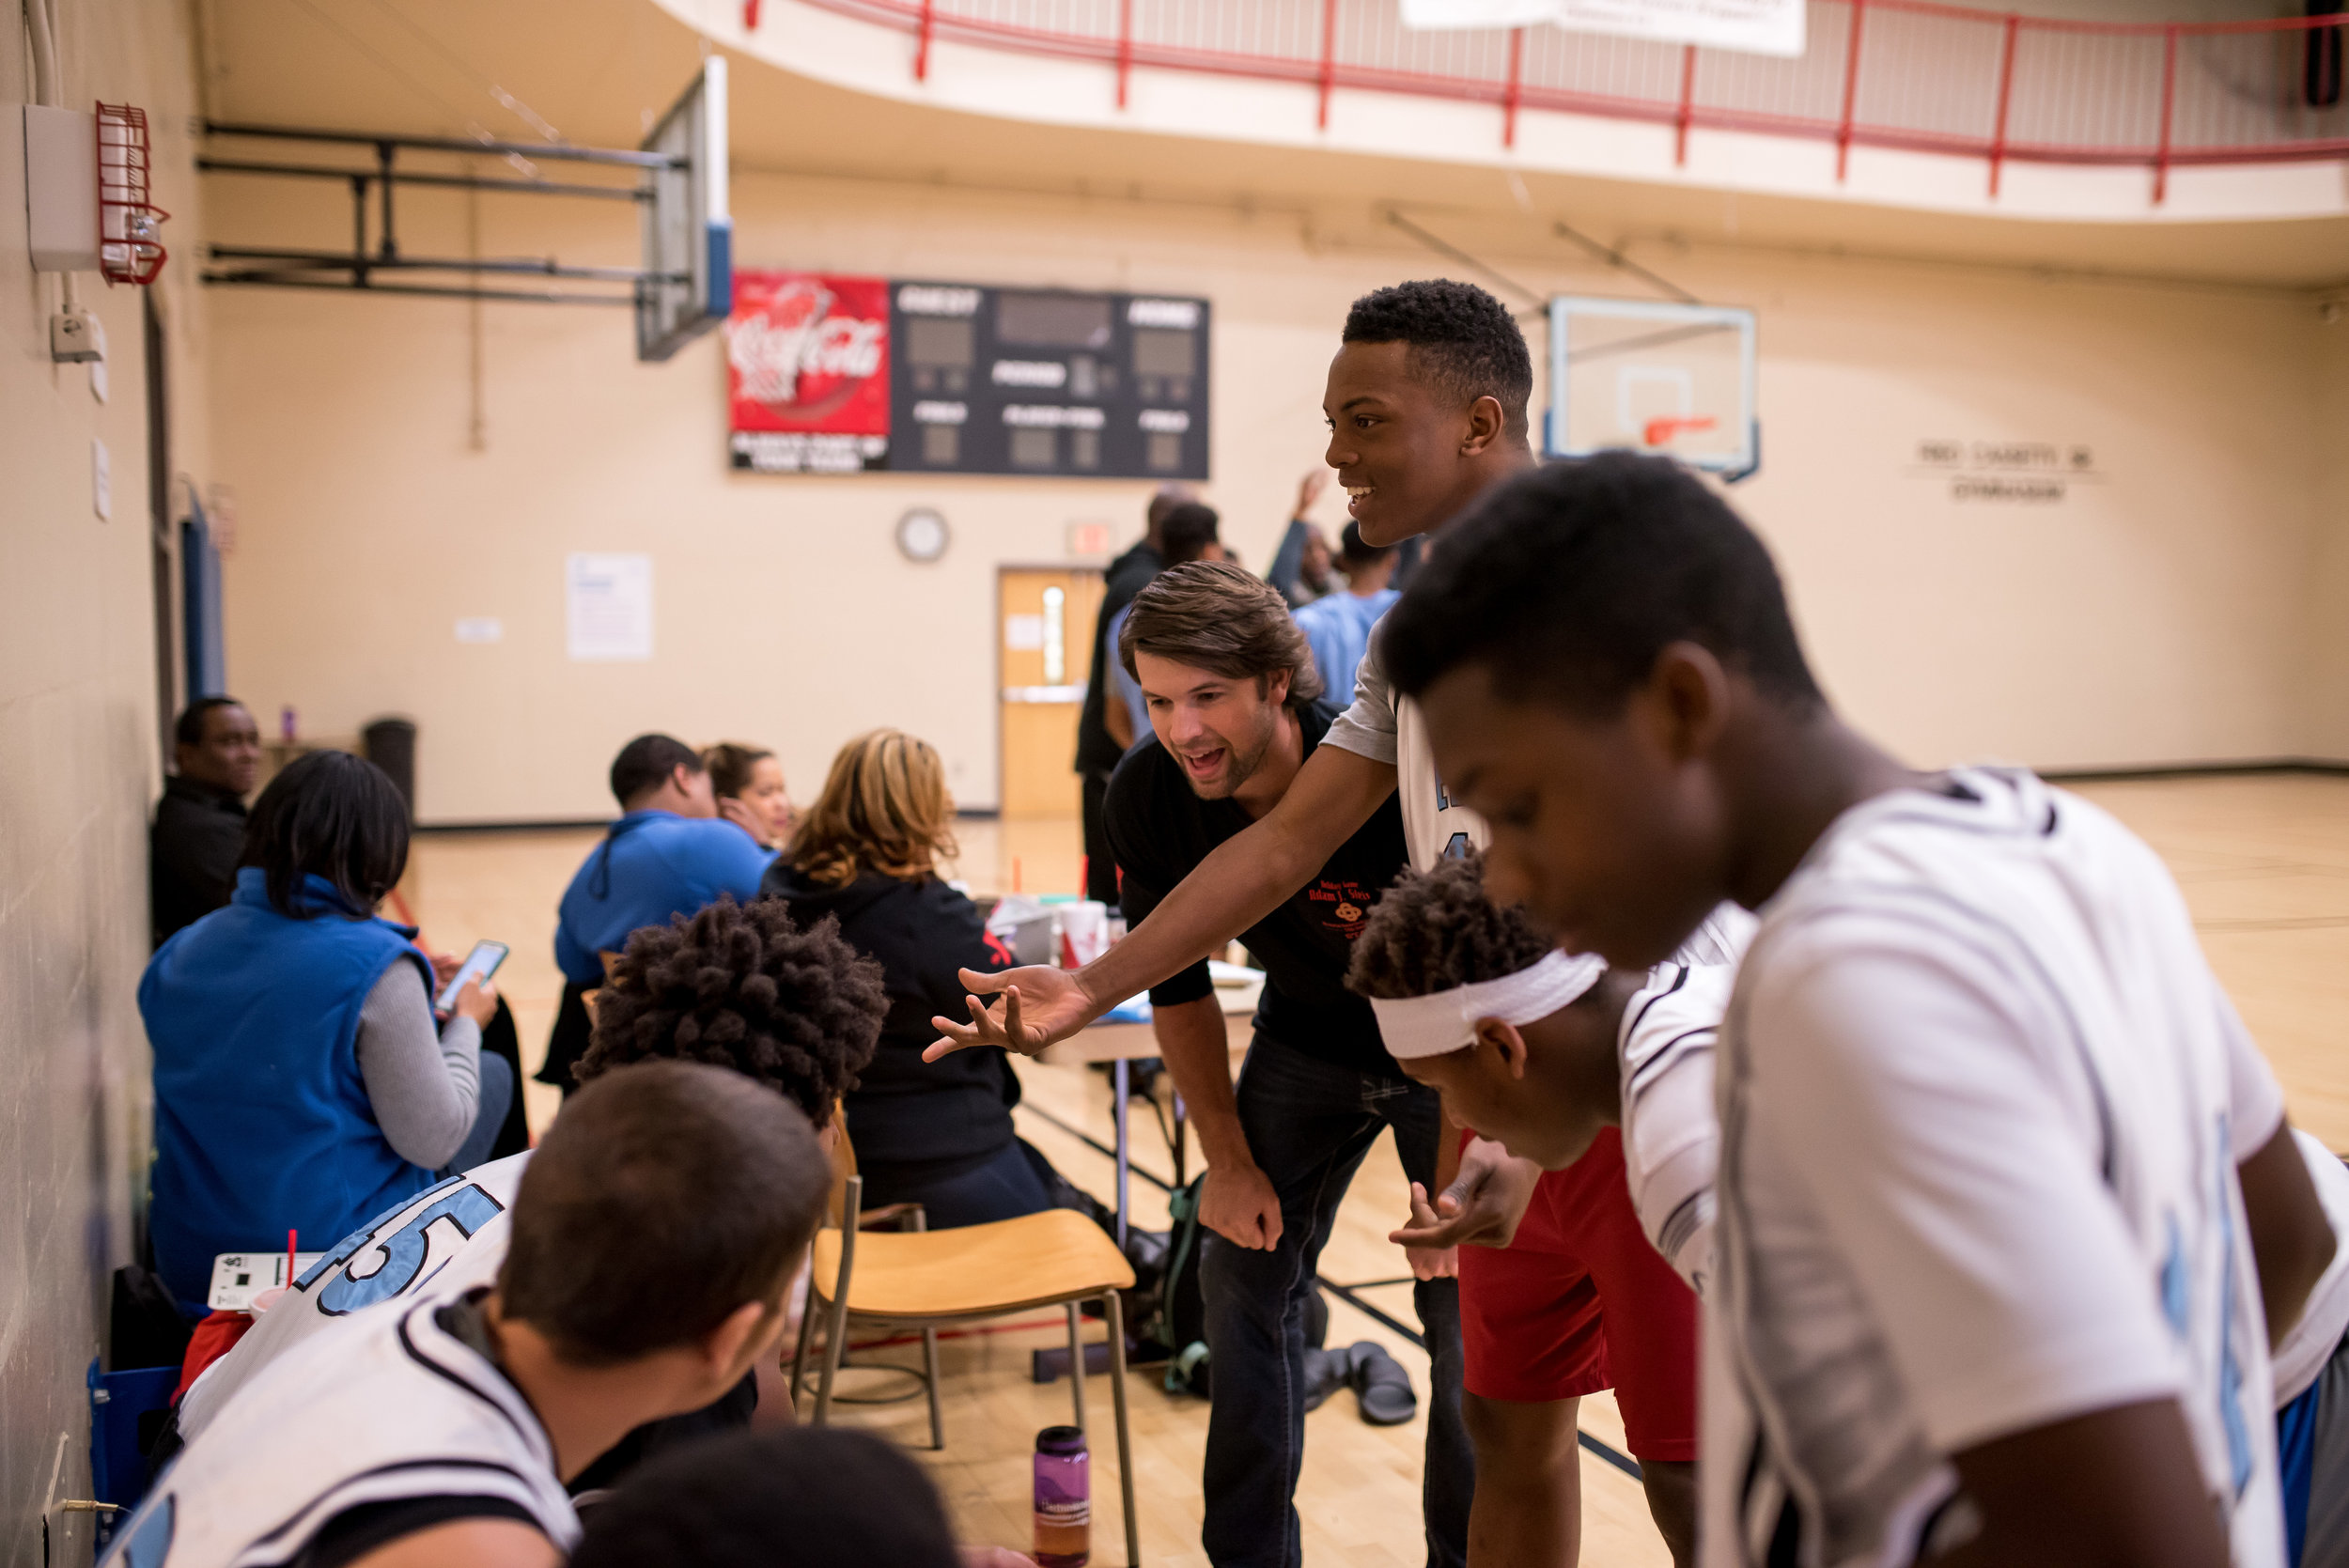 Steve Ownby and Ben Young were compelled by faith to organize and coach a basketball team composed of youth from our neighborhood.